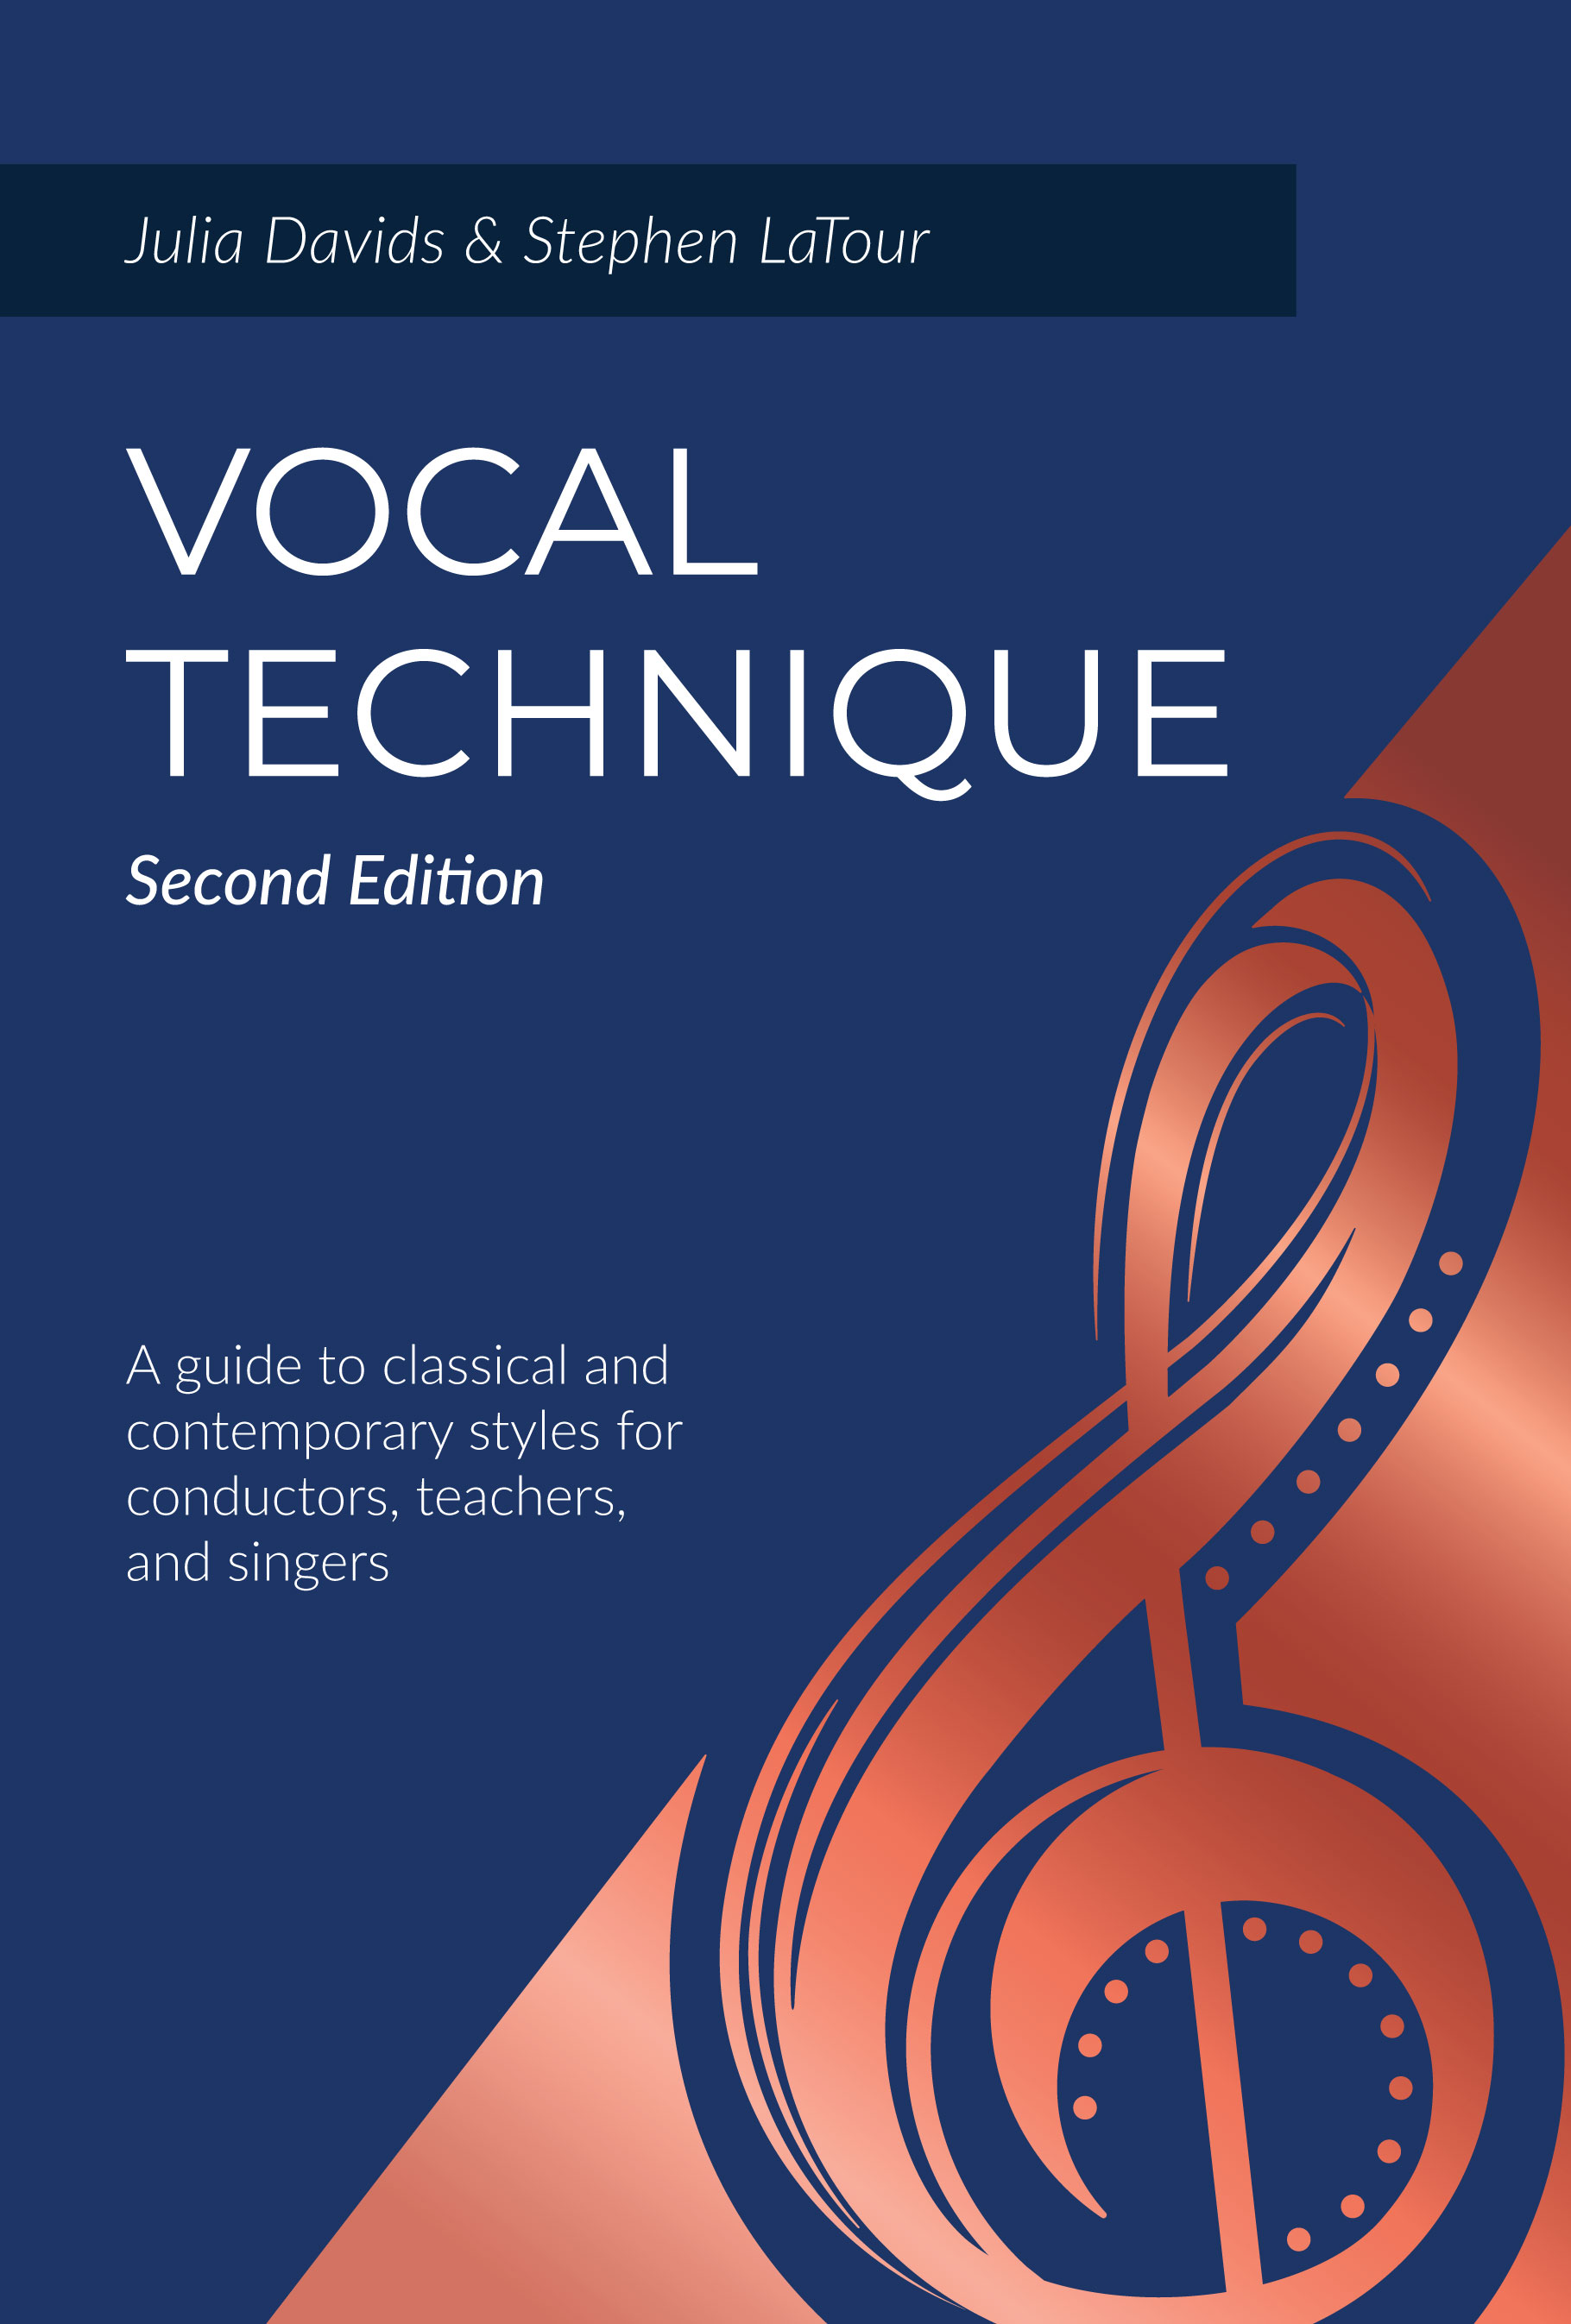 Vocal Technique: A Guide to Classical and Contemporary Styles for Conductors, Teachers, and Singers, Second Edition by Julia  Davids, Stephen  LaTour